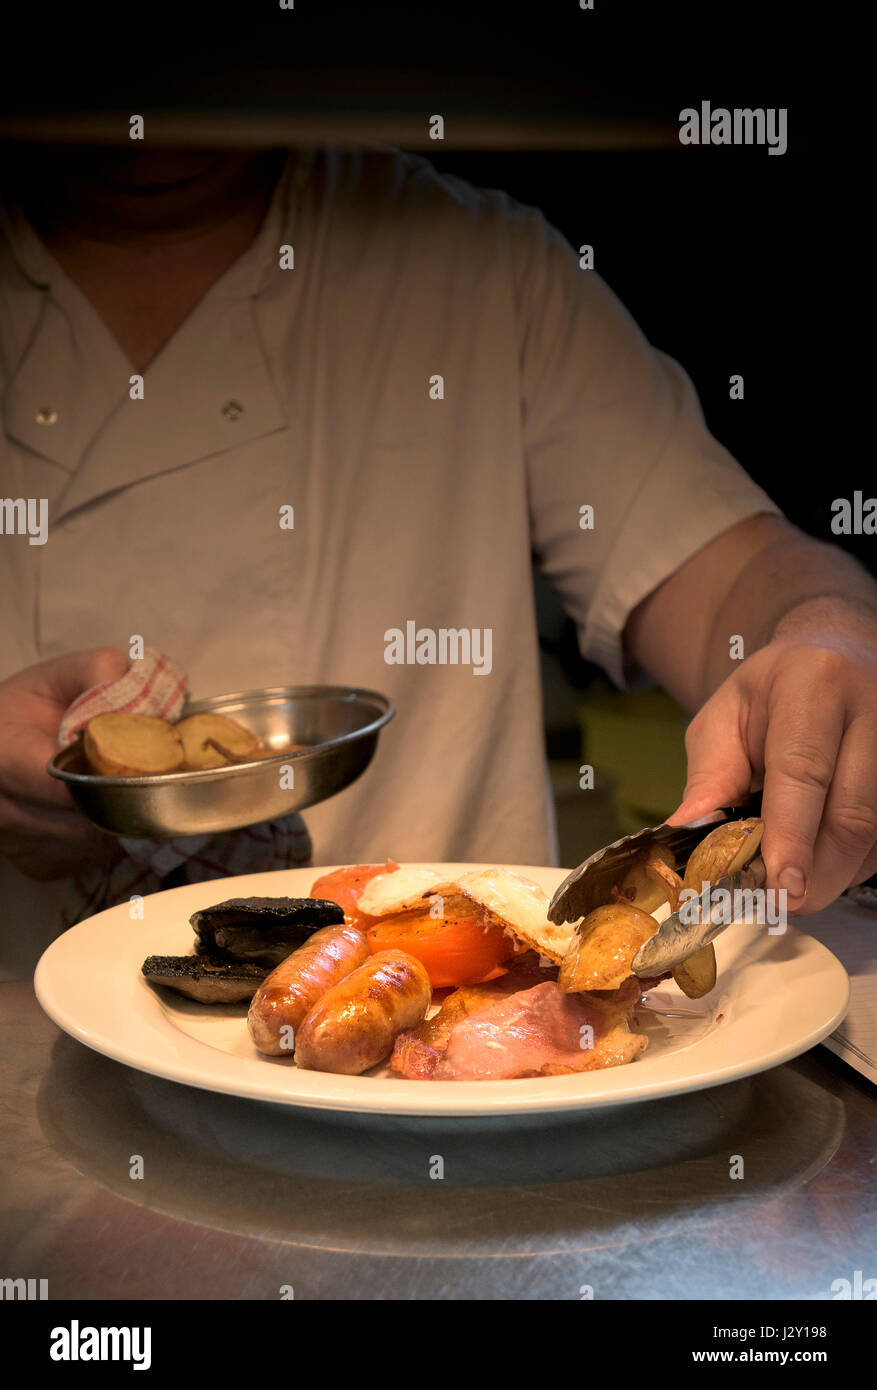 Restaurant Chef Food preparation Full English Breakfast Fry up Cooked breakfast Kitchen Grilled Fried Unhealthy - Stock Image